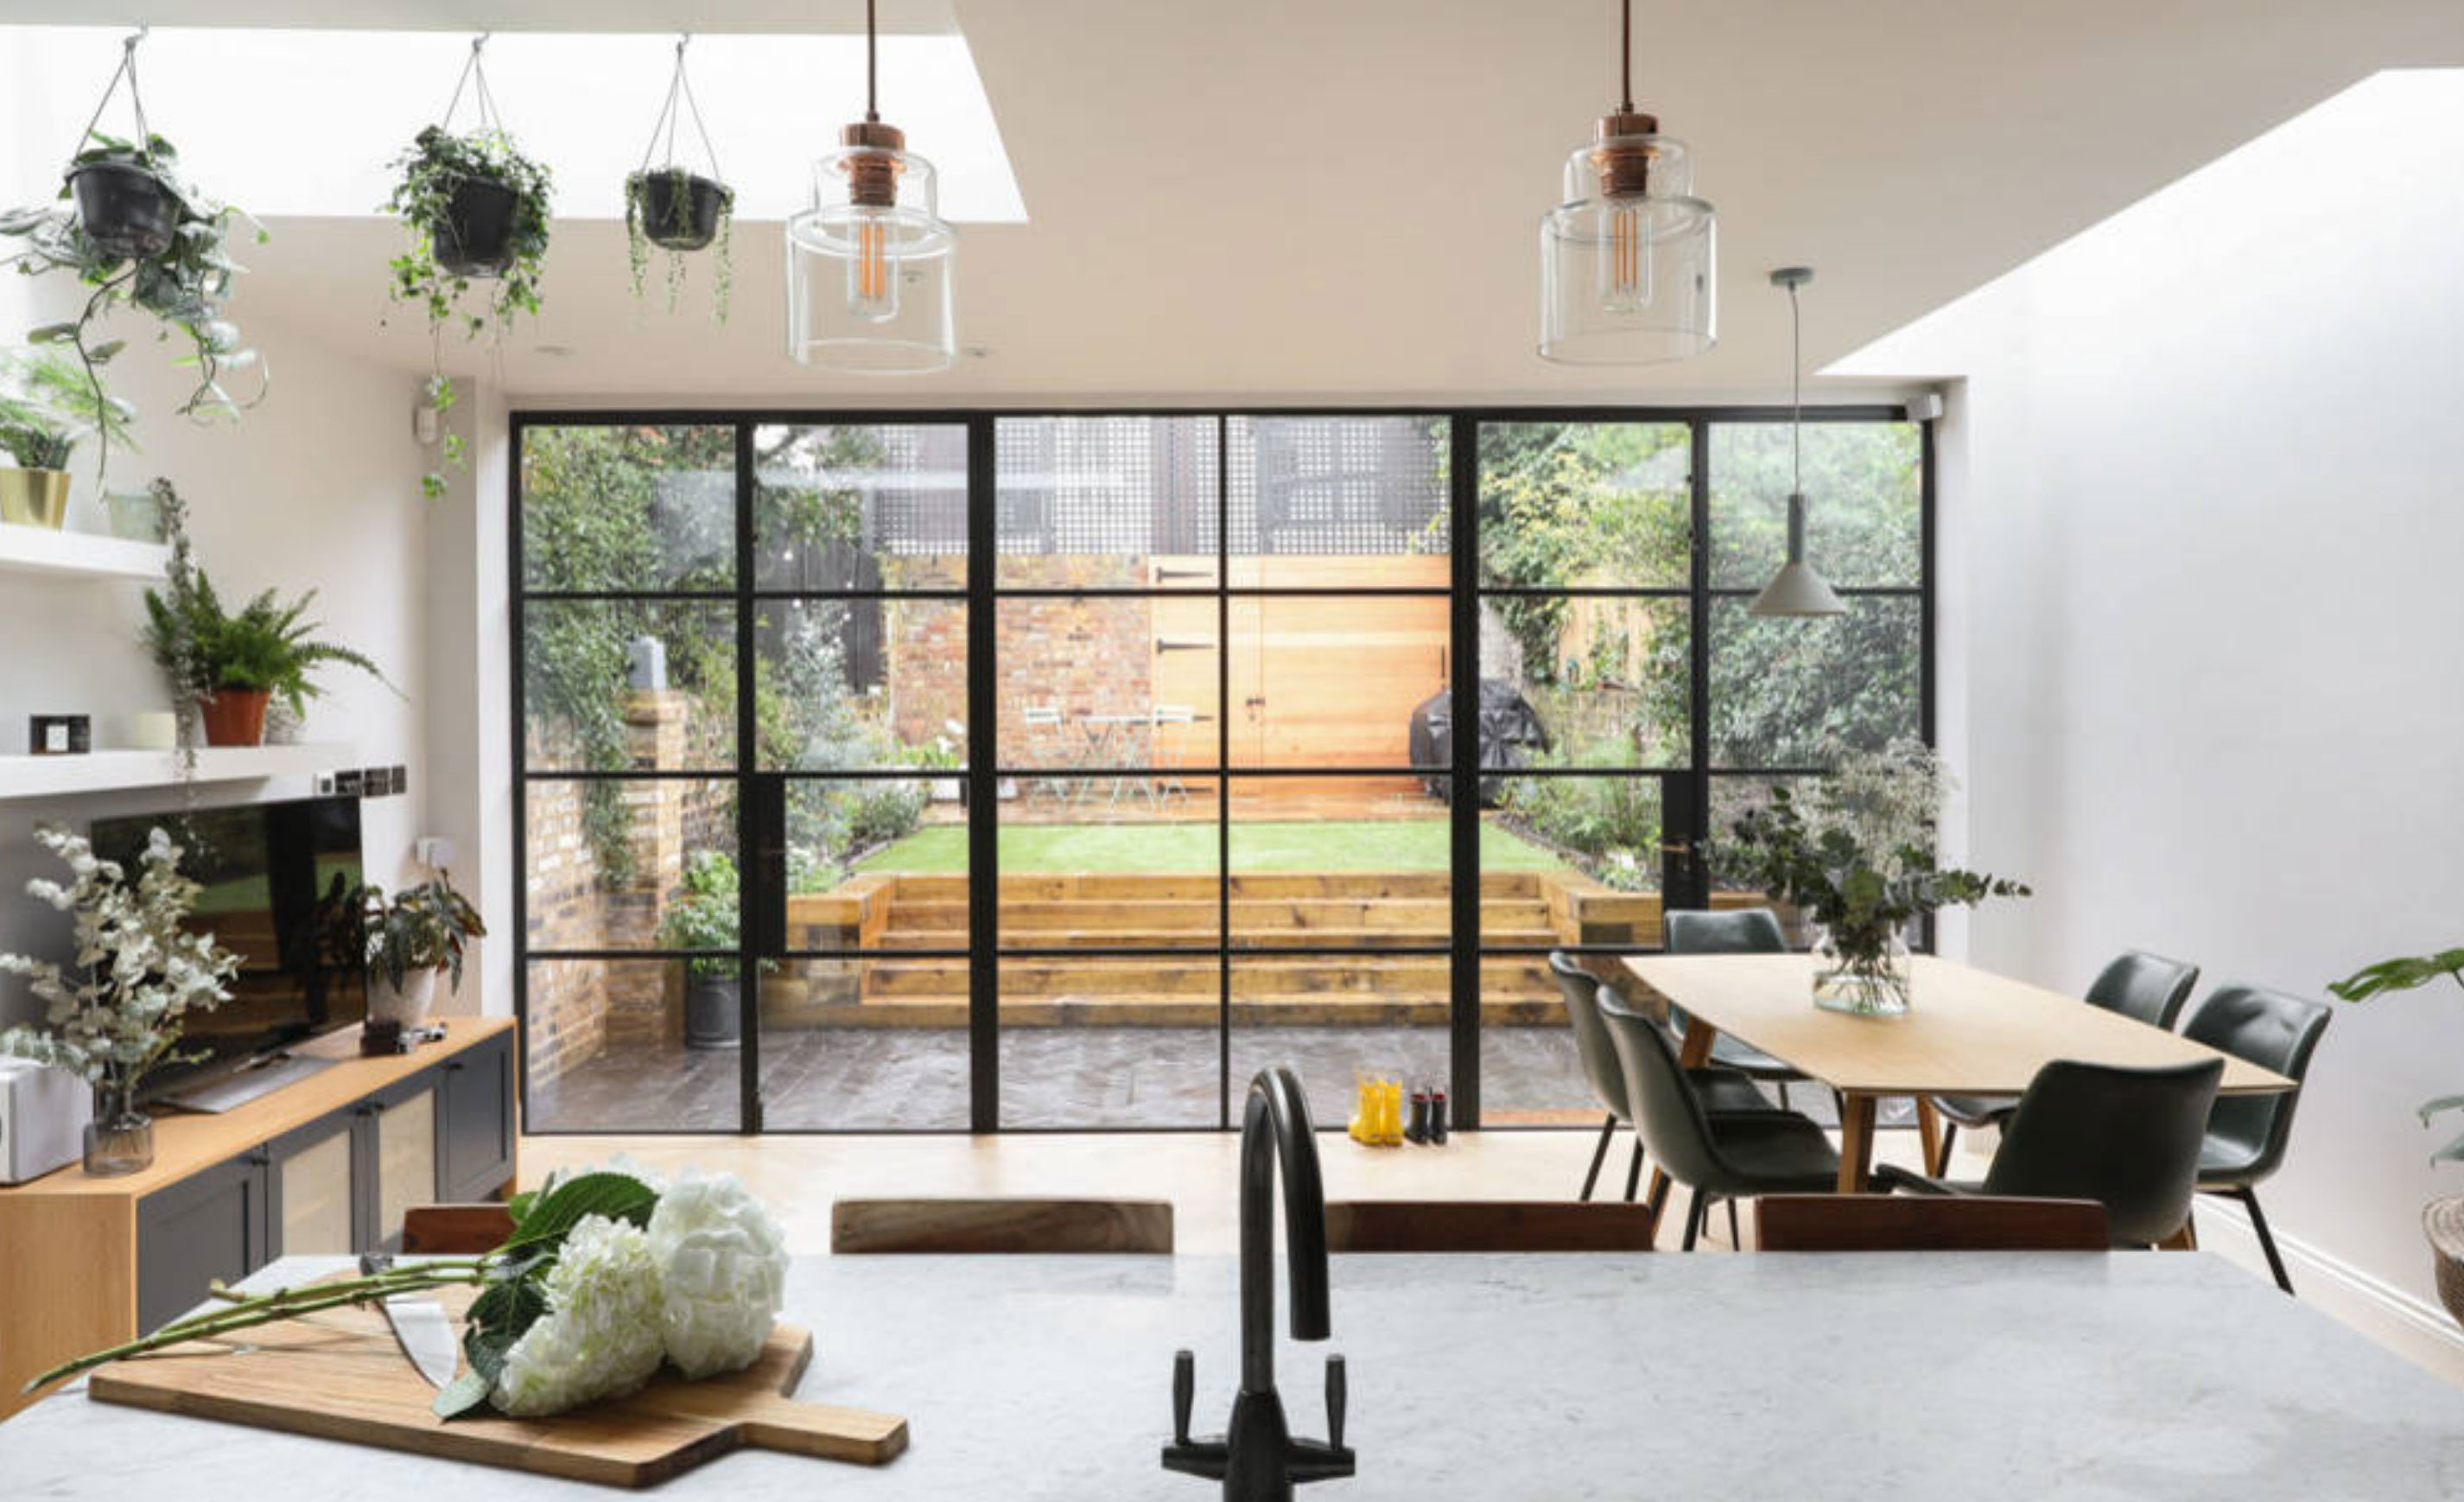 Crittall Doors flood this airy extension with light